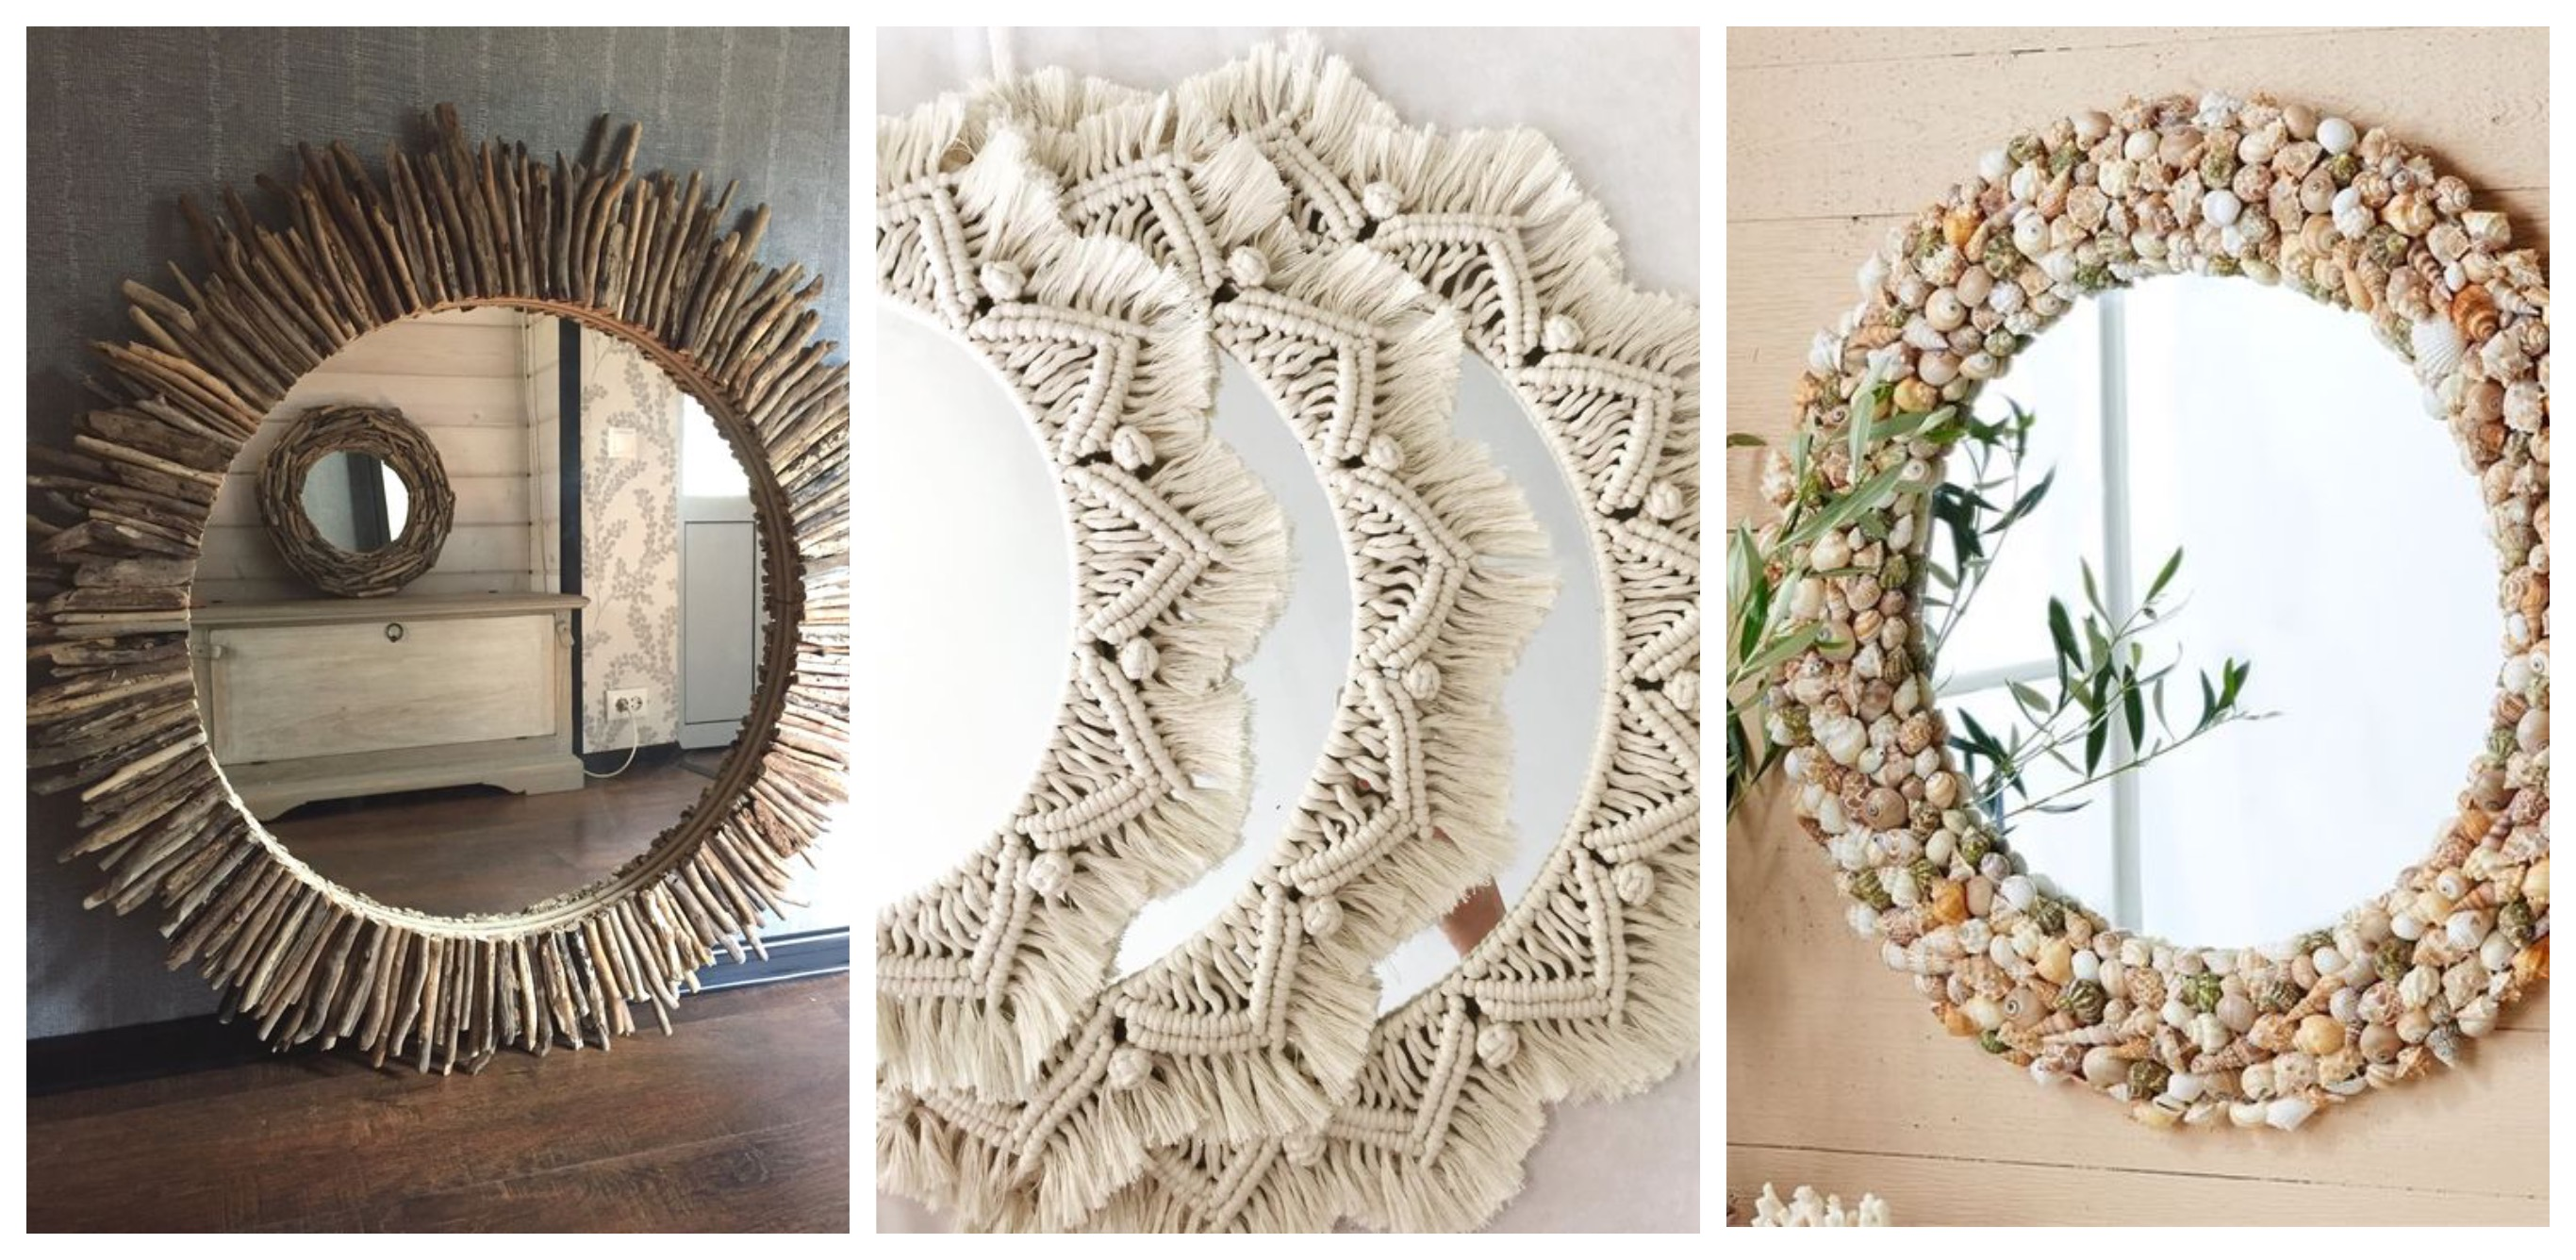 Fantastic Diy Mirror Frames That You Can Make Yourself My Desired Home